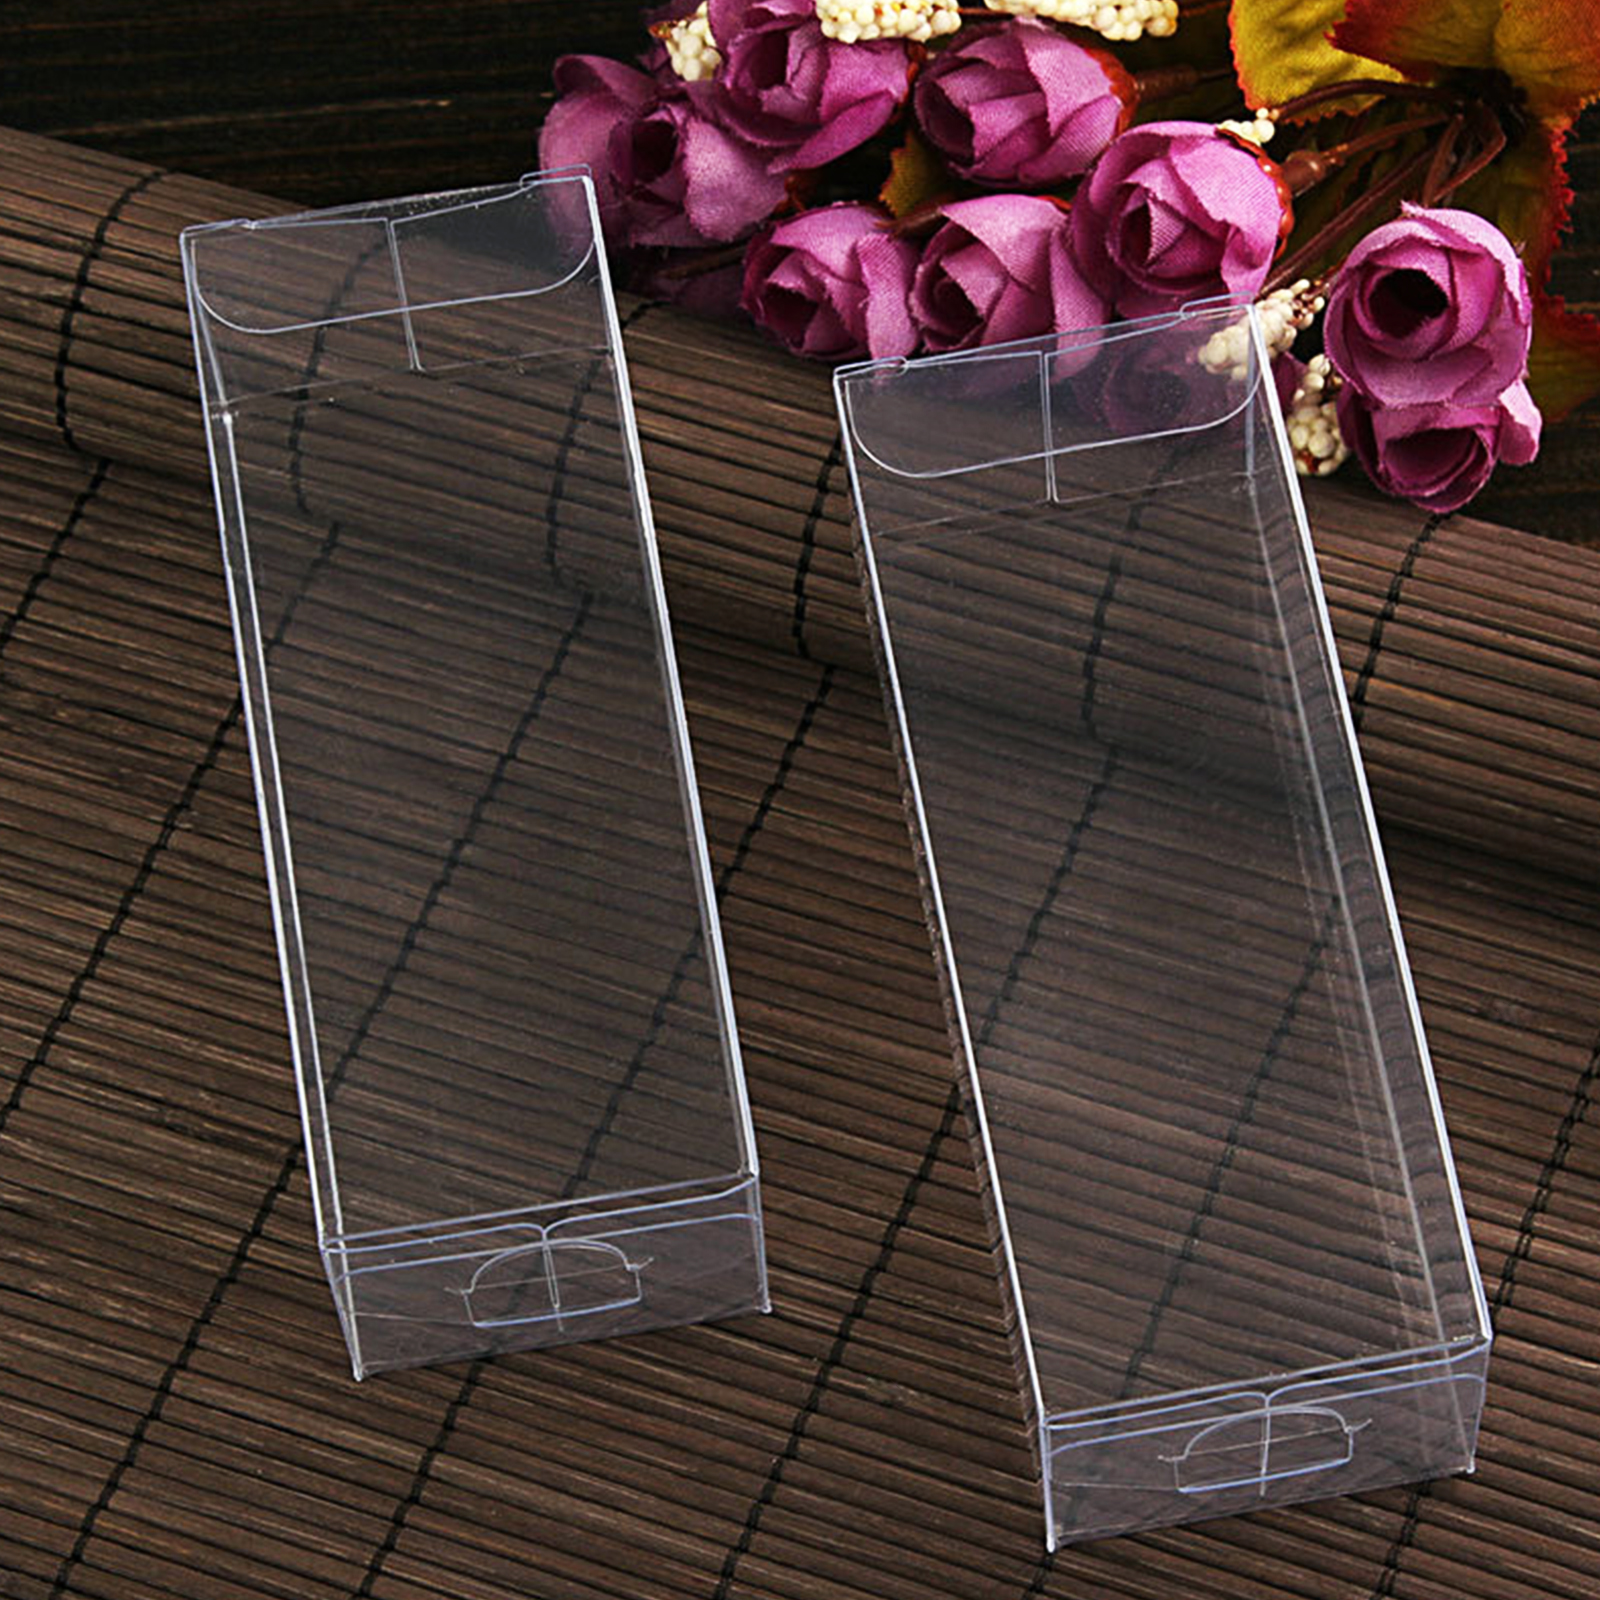 10pcs/lot Clear PVC Pillow Box Shape Gifts Box Transparent Candy Gift Packaging Gift Box For Wedding Party Favor Decoration